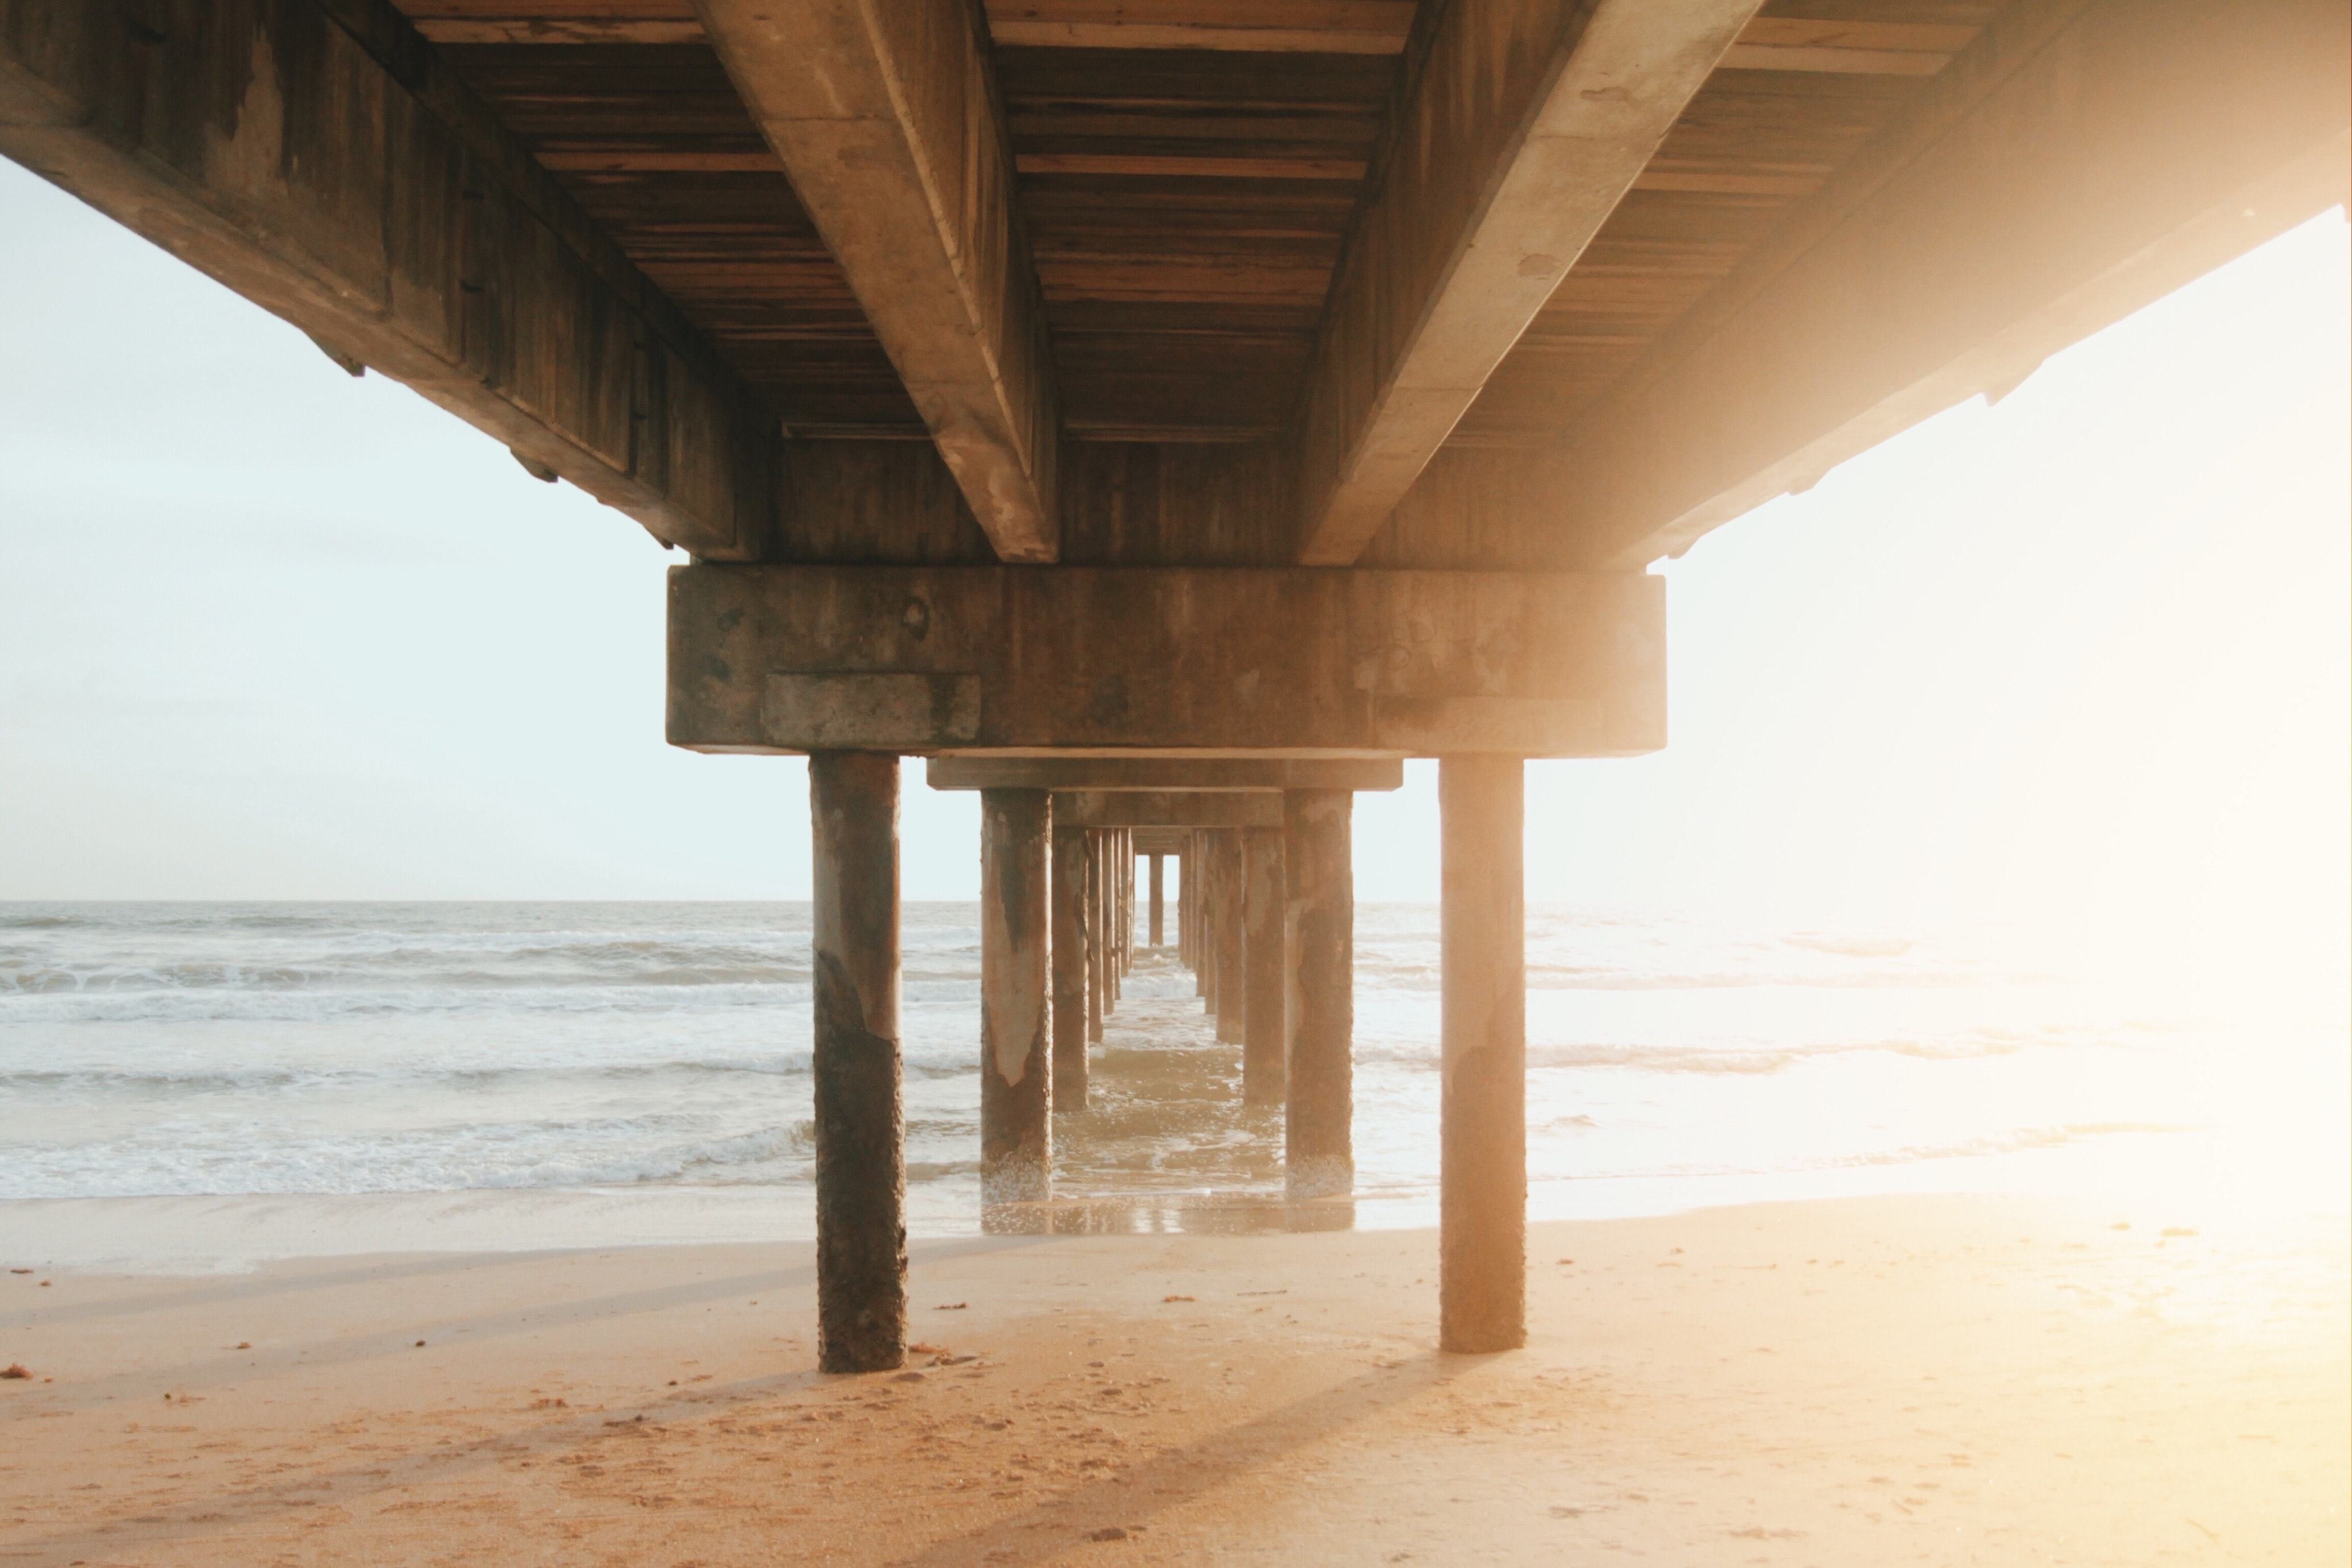 Free Unsplash photo from Chase Glisson